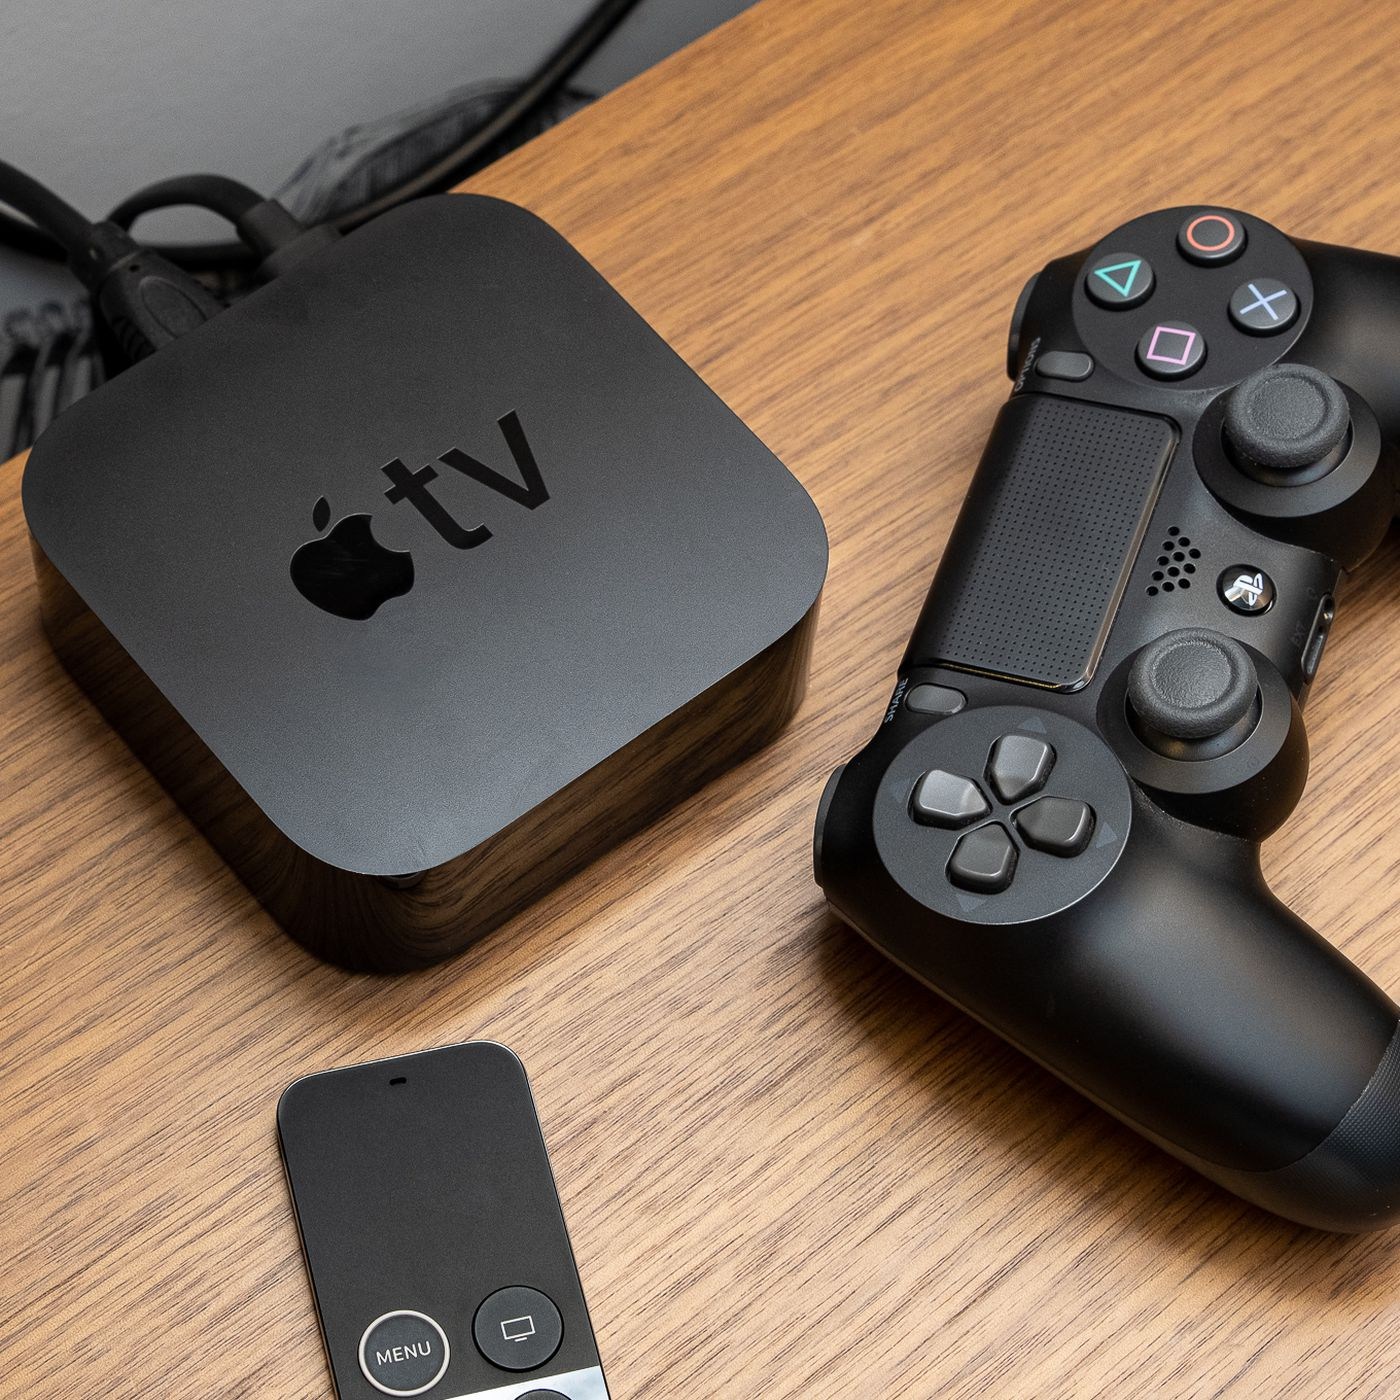 Tvos 13 S Small Improvements Make For A Much Better Apple Tv Experience The Verge